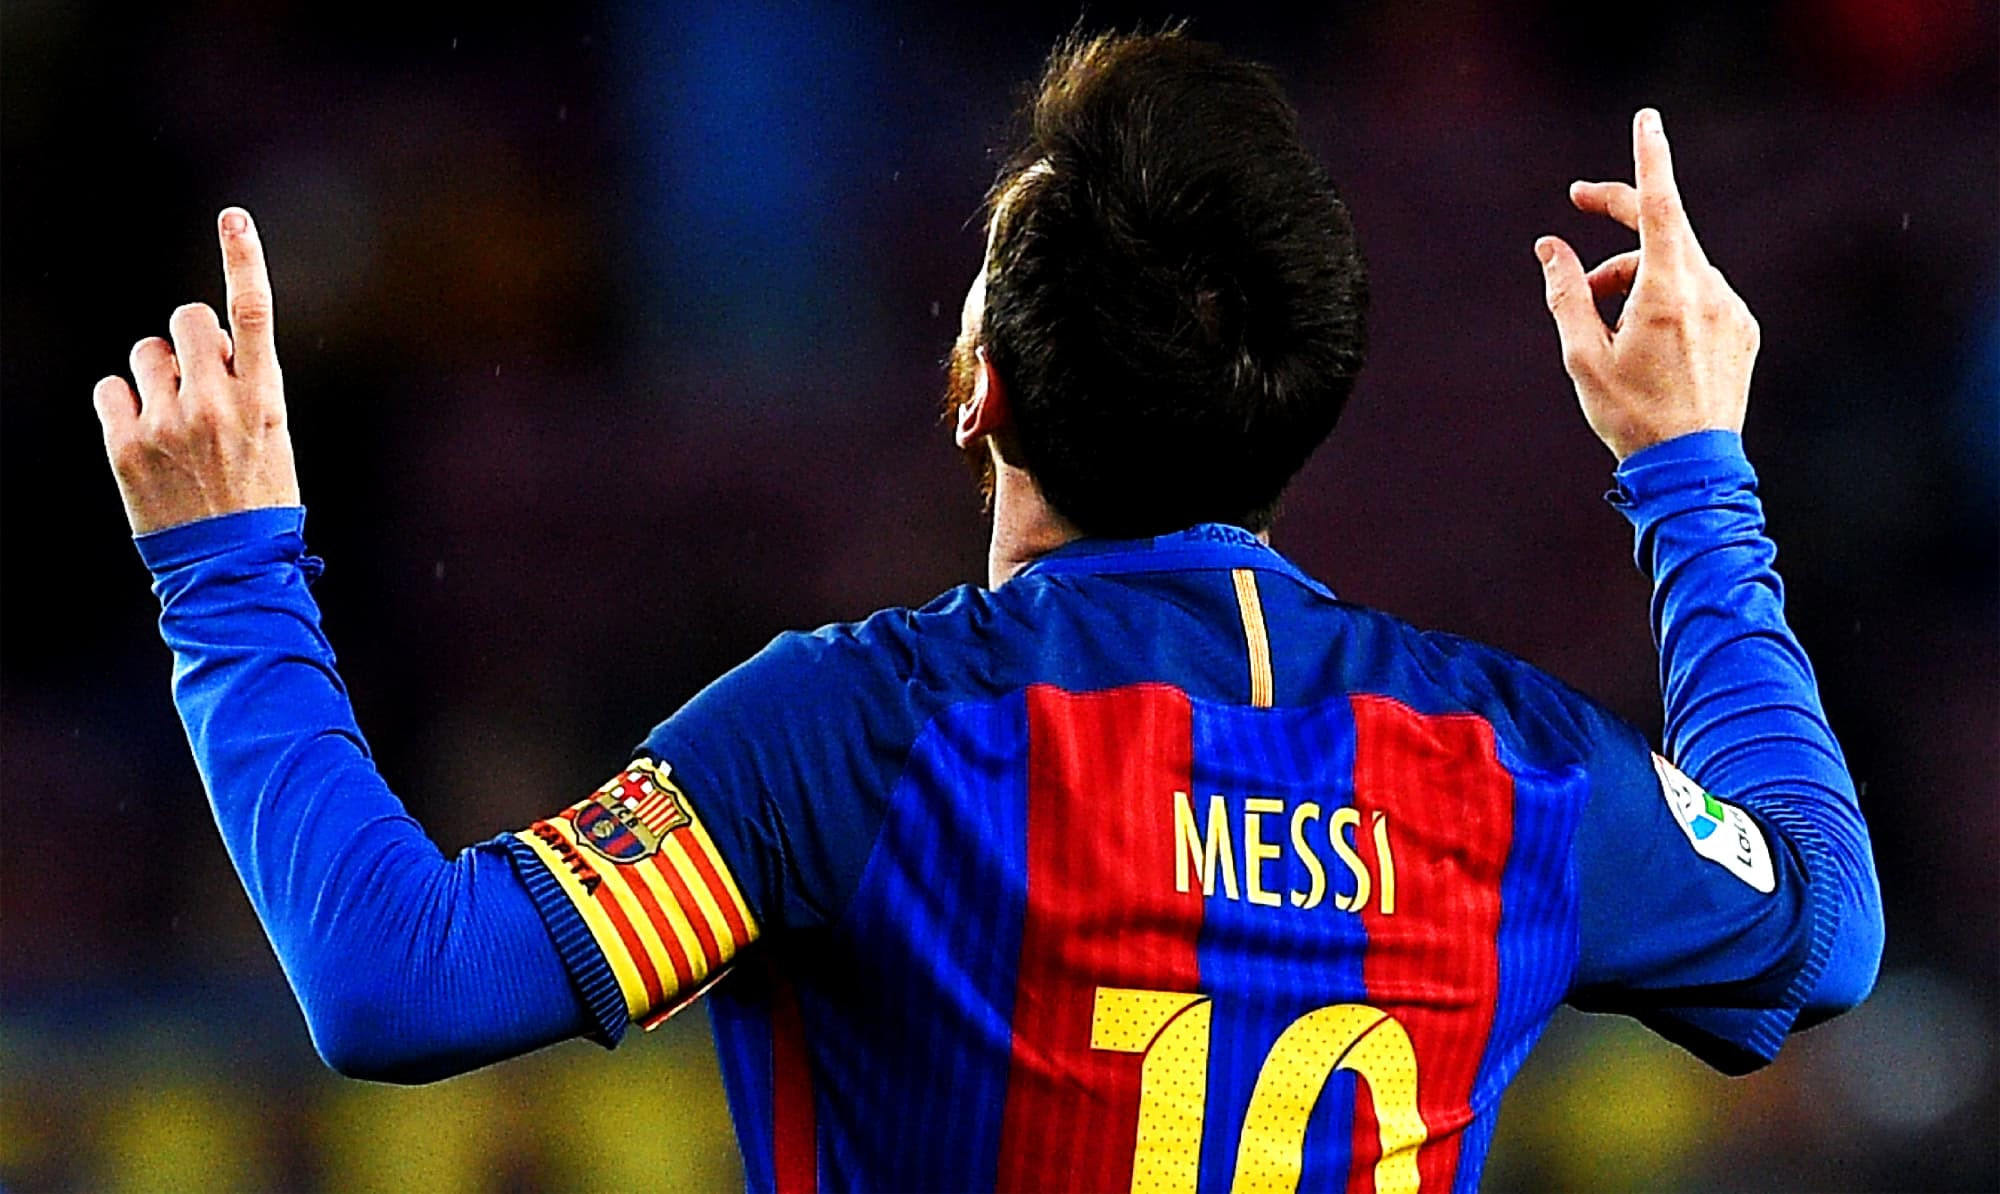 Lionel Messi, the maestro from Rosario